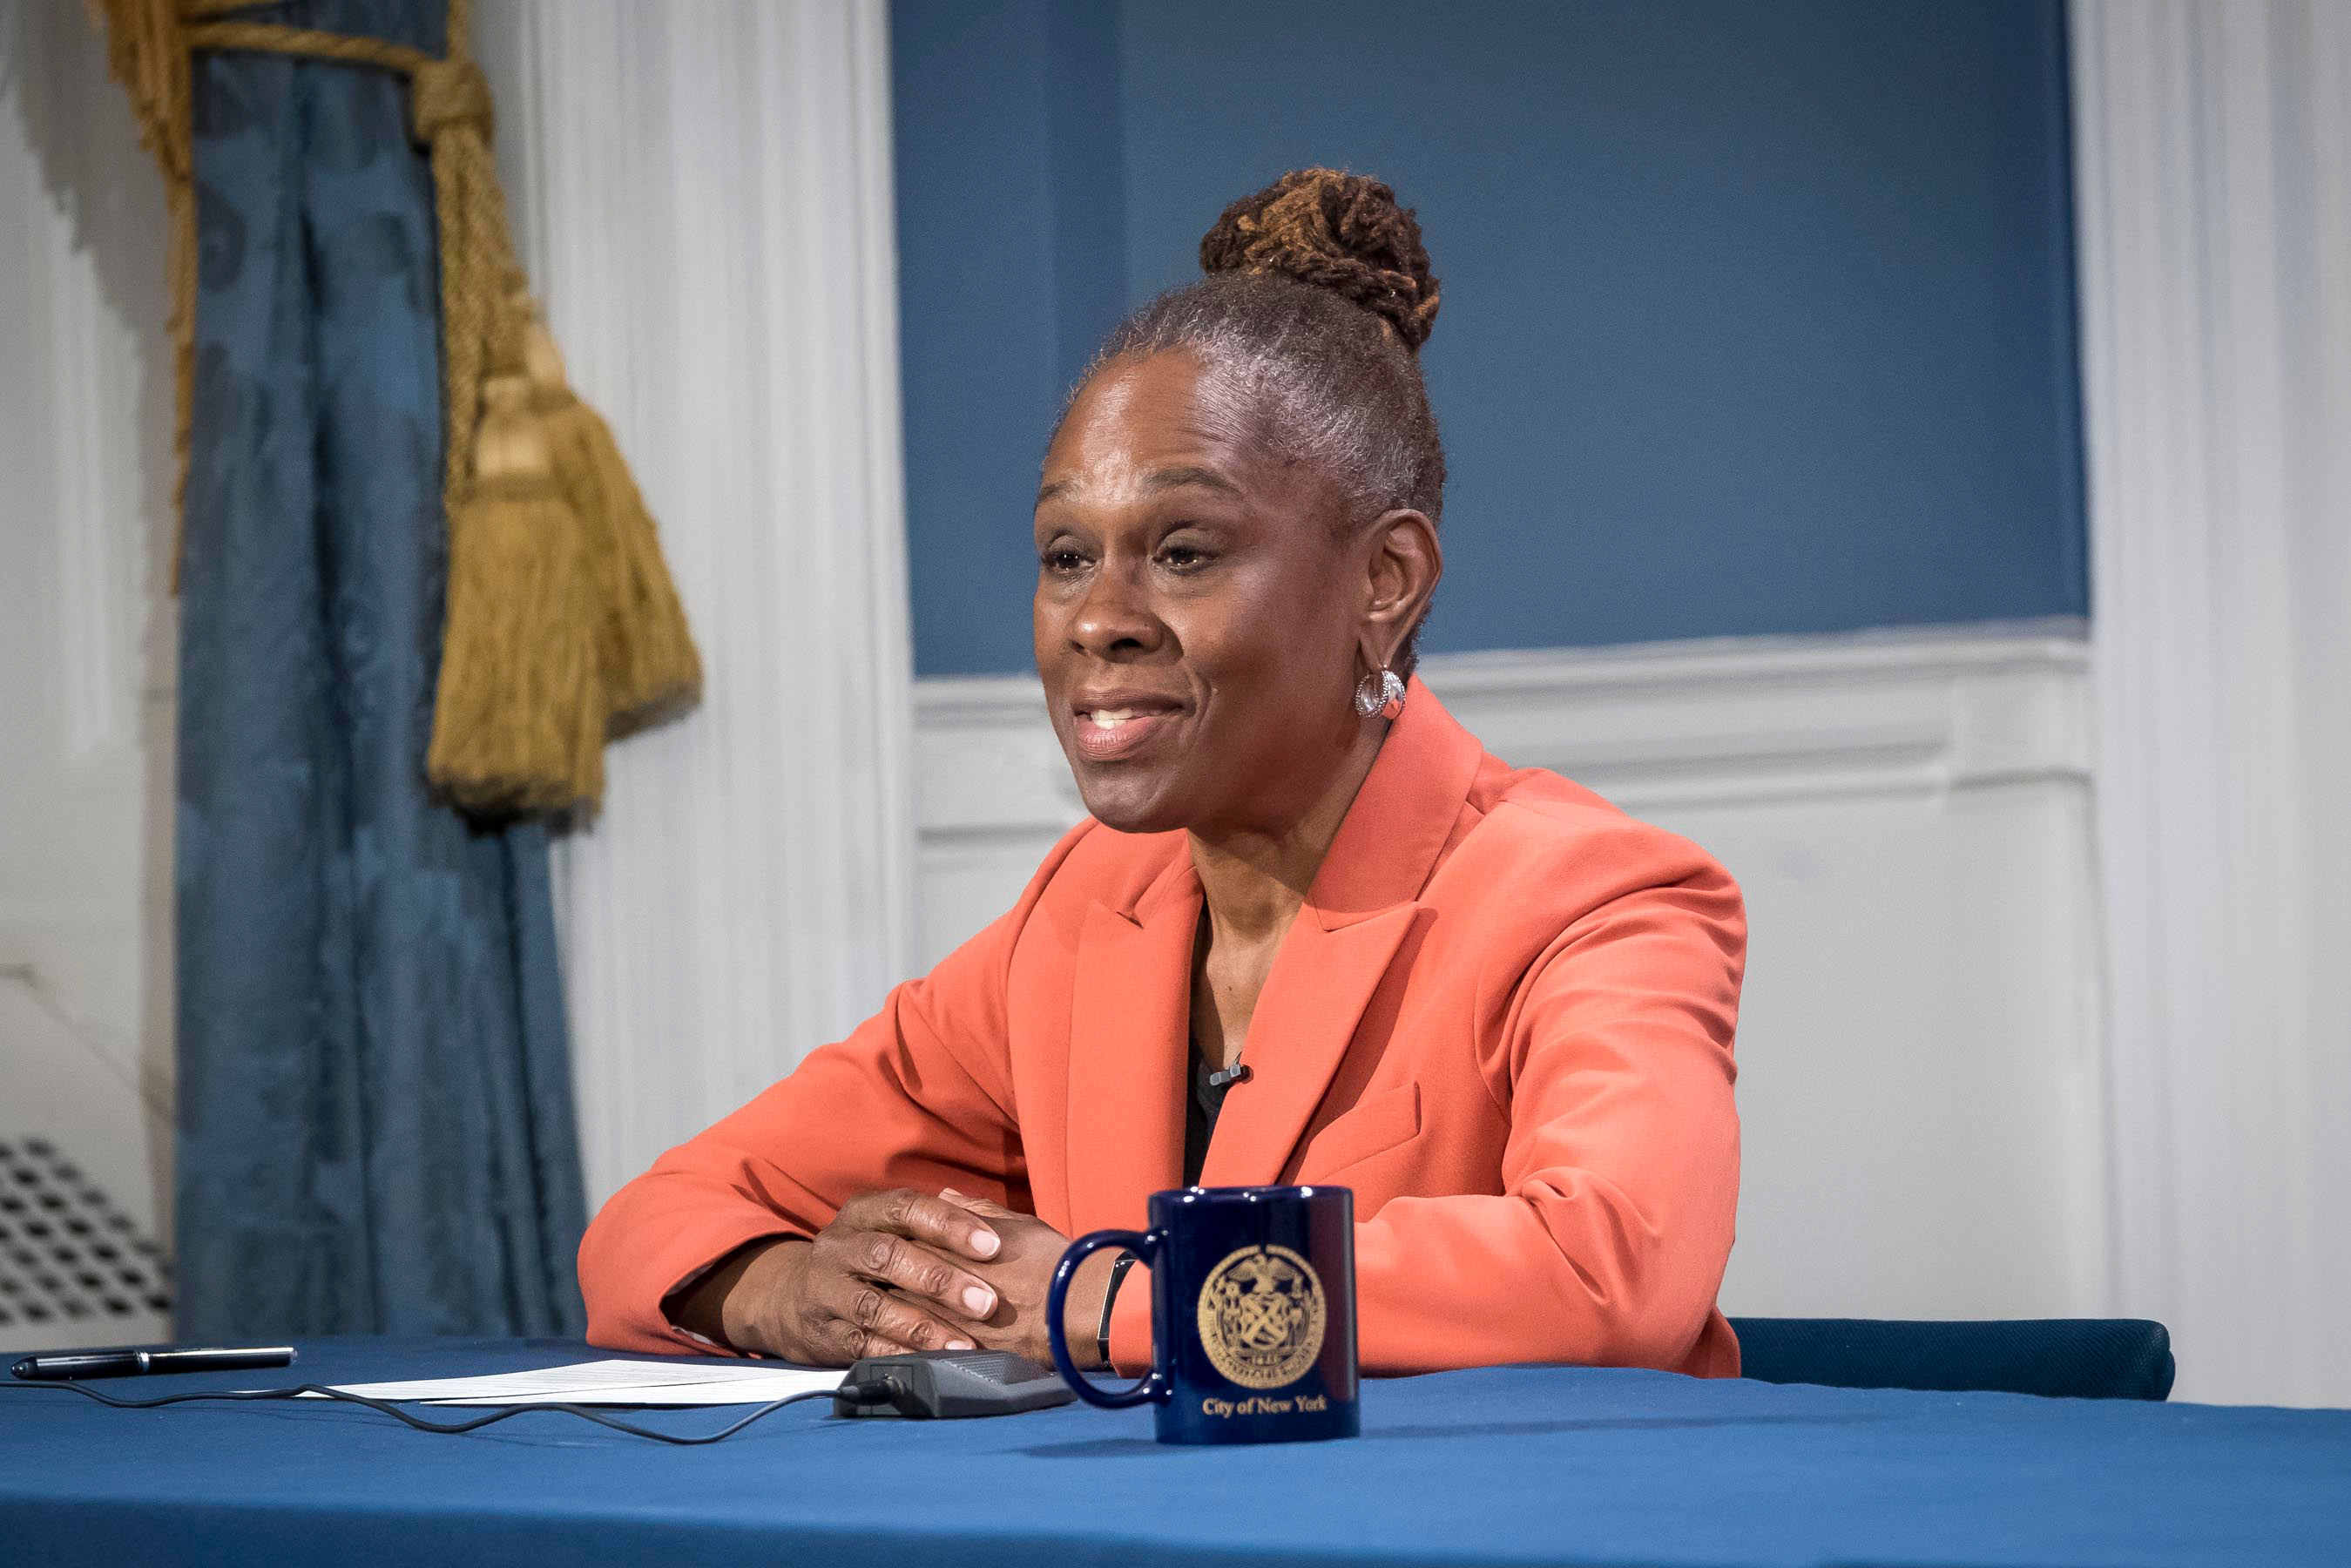 First Lady Chirlane McCray announces a program between the city and Department of Defense providing mental health programs for health care workers, April 29, 2020.